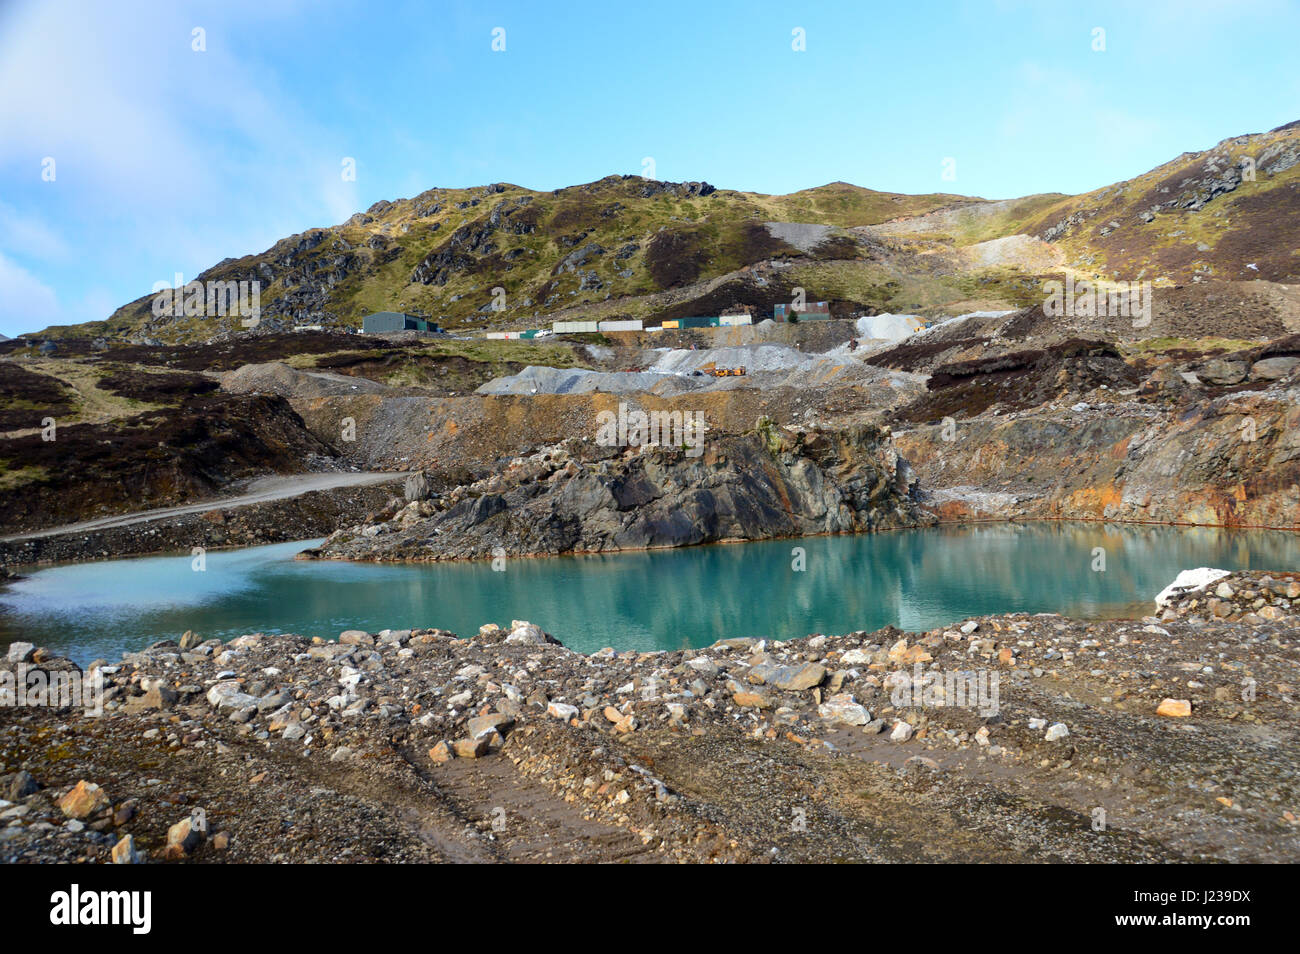 One the Catchment Pools from the Mining Operations at Foss Barytes Mine near Aberfeldy, Below the Scottish Mountain - Stock Image